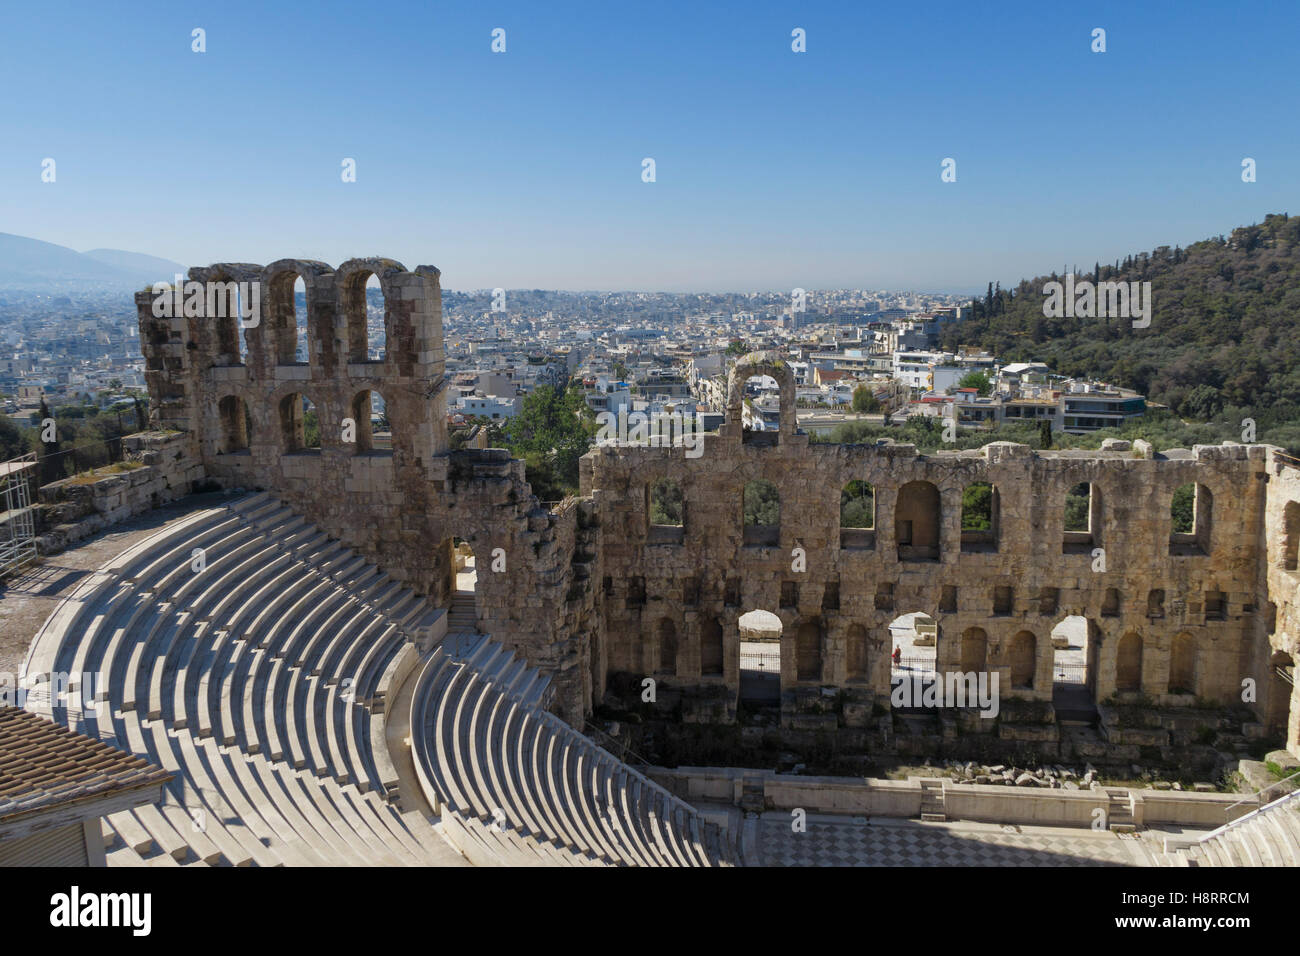 Odeon of Herodes Atticus, Acropolis, Athens, Greece - Stock Image